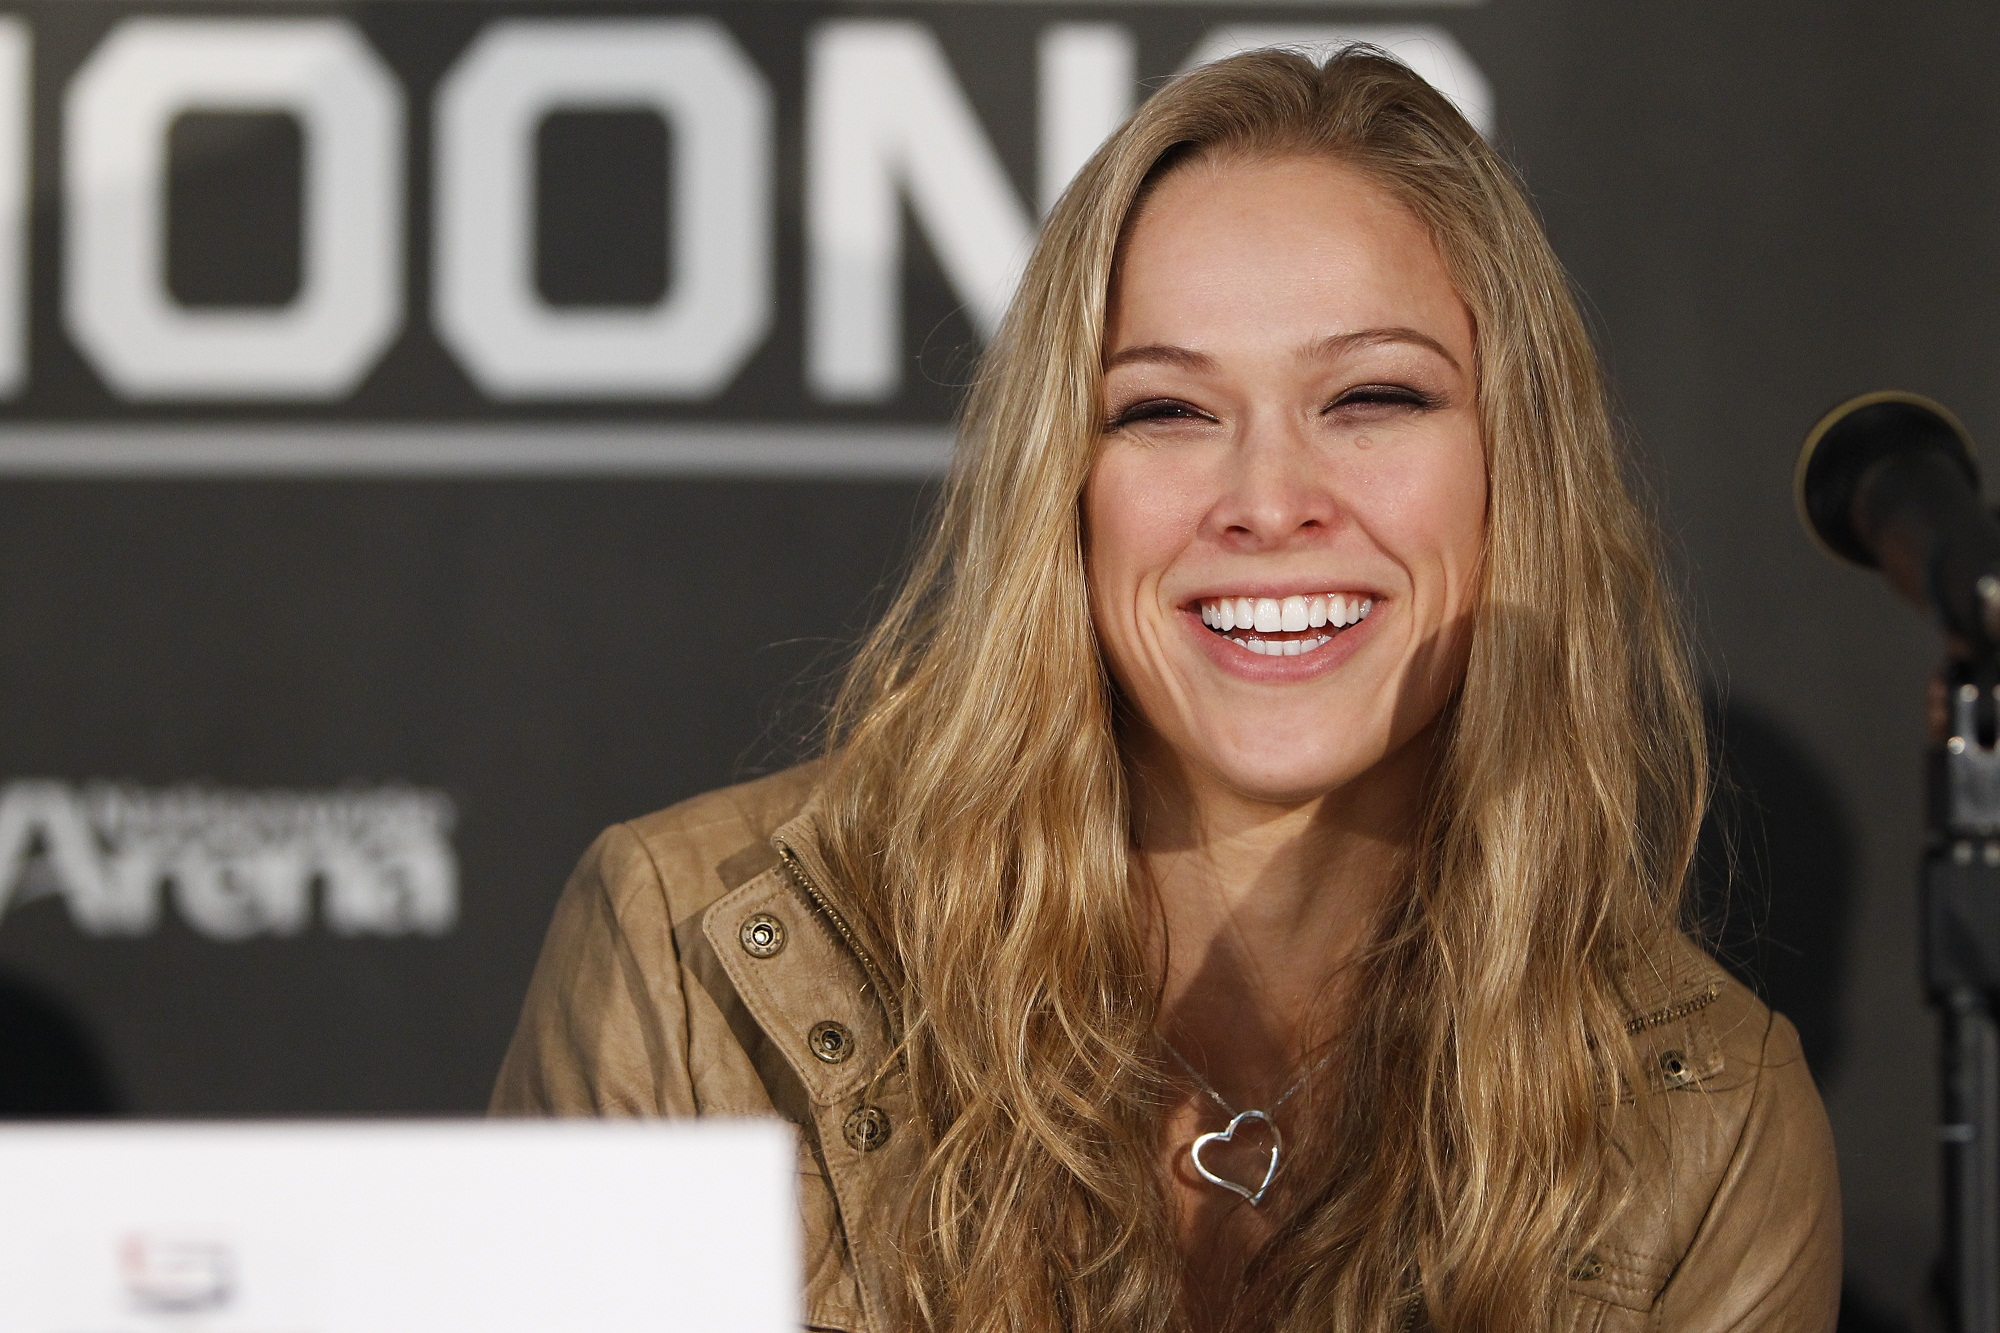 Strikeforce bantamweight champ Ronda Rousey